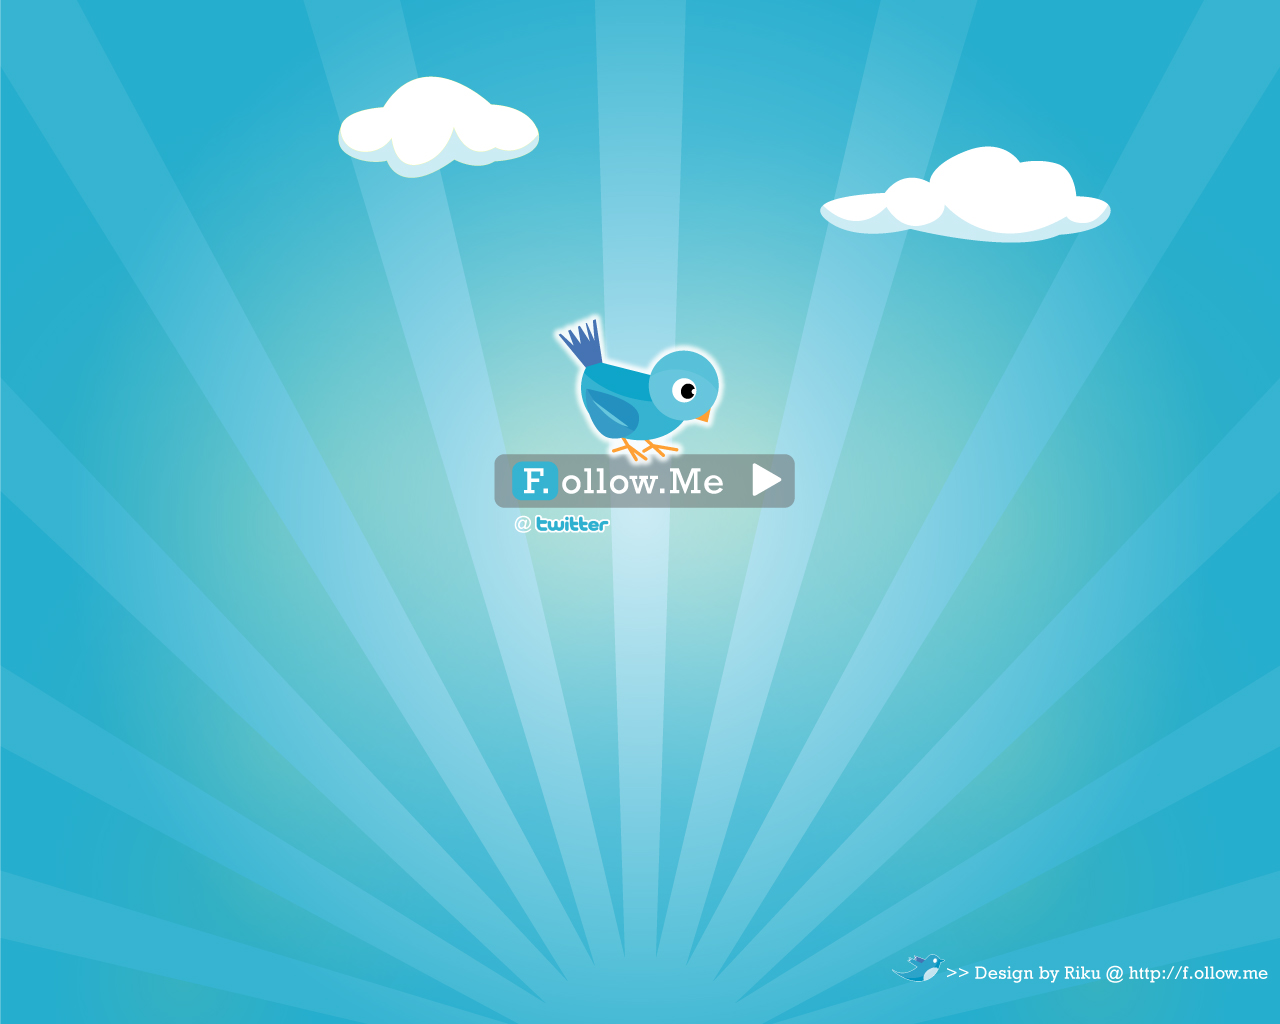 Twitter: new price tag